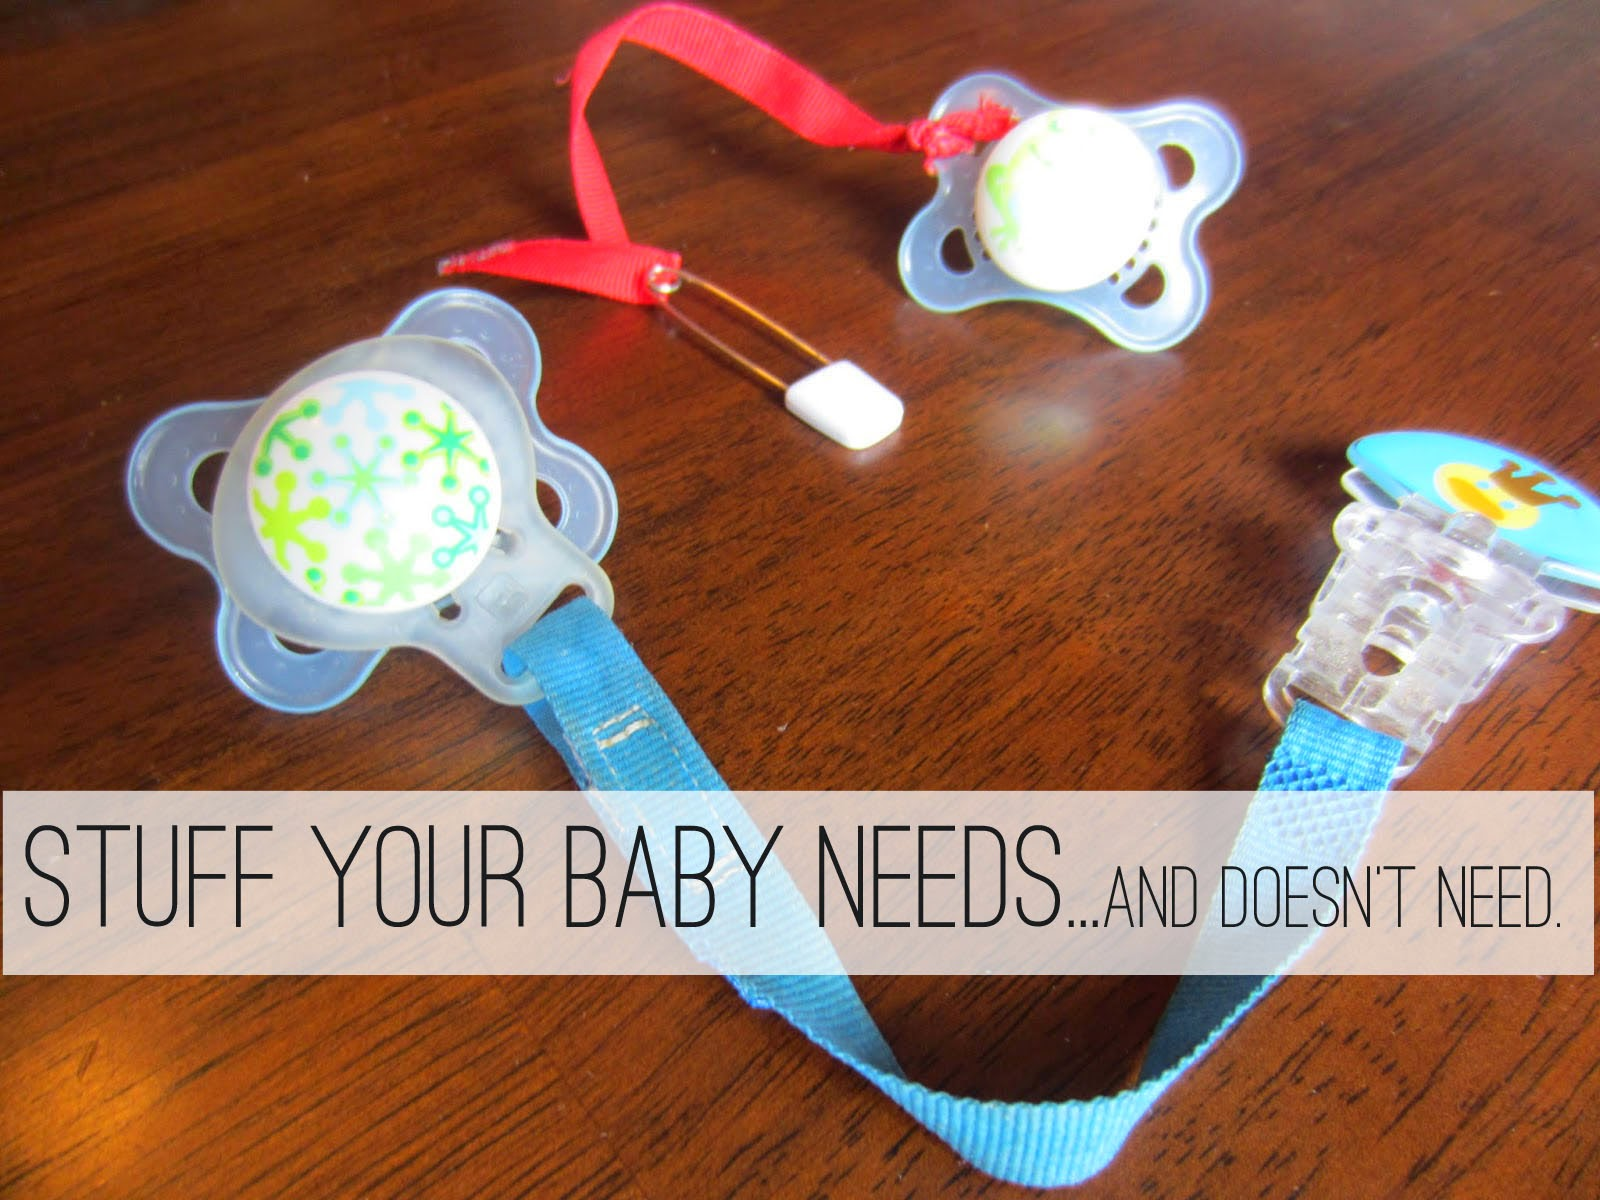 Swag on, momma!: Stuff Your Baby Needs! (And Doesn't Need.)